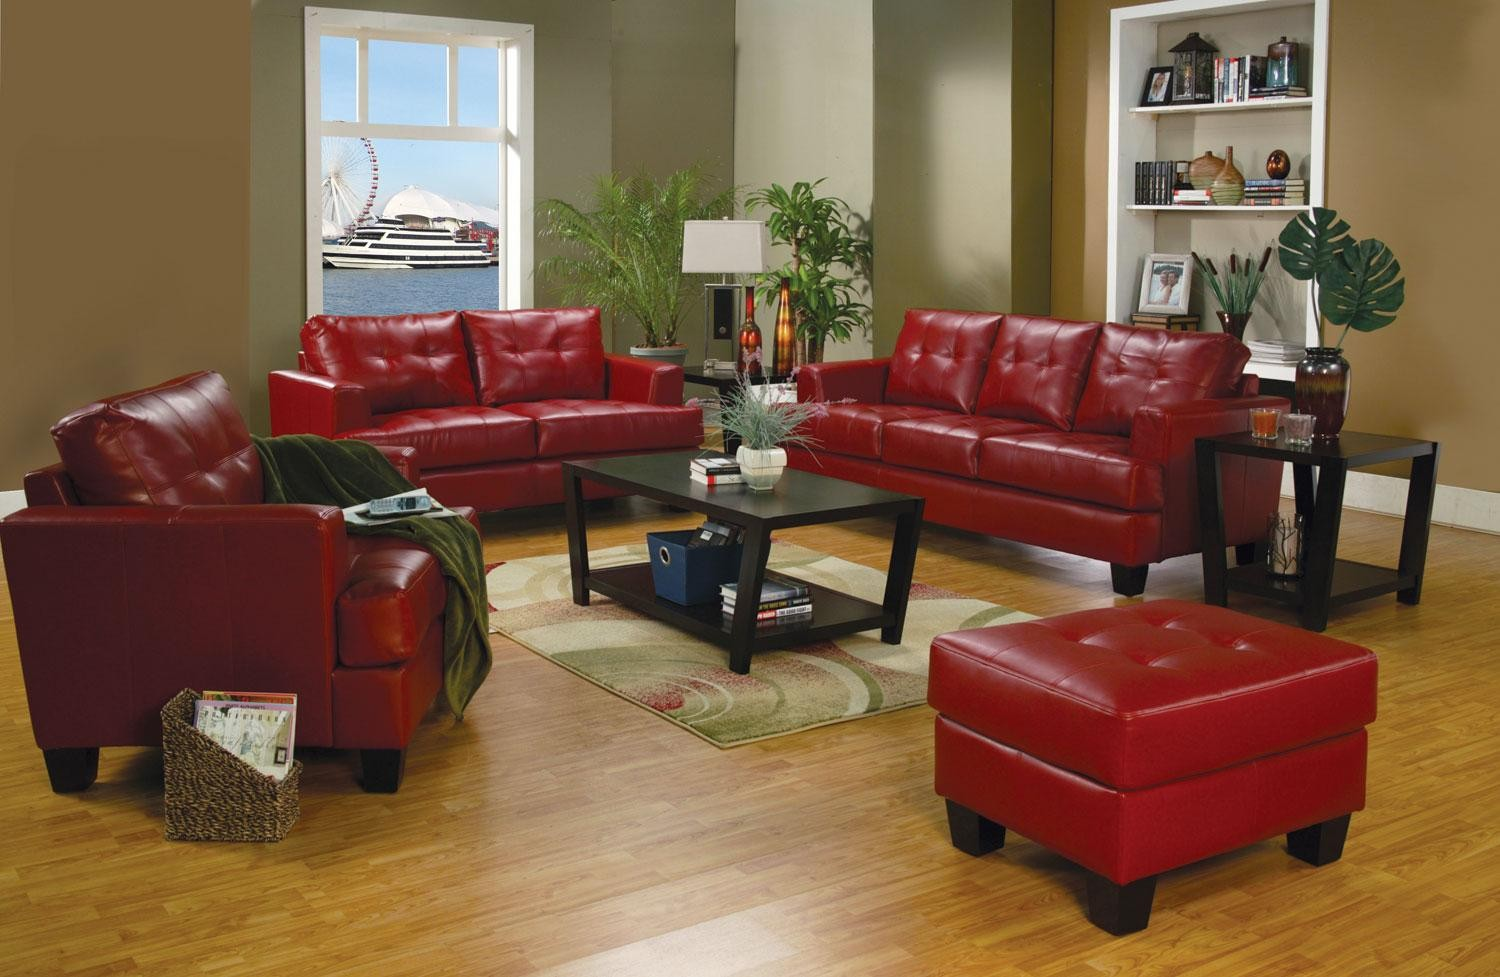 Samuel Red Leather Living Room Set - 501831 from Coaster (501831 ...